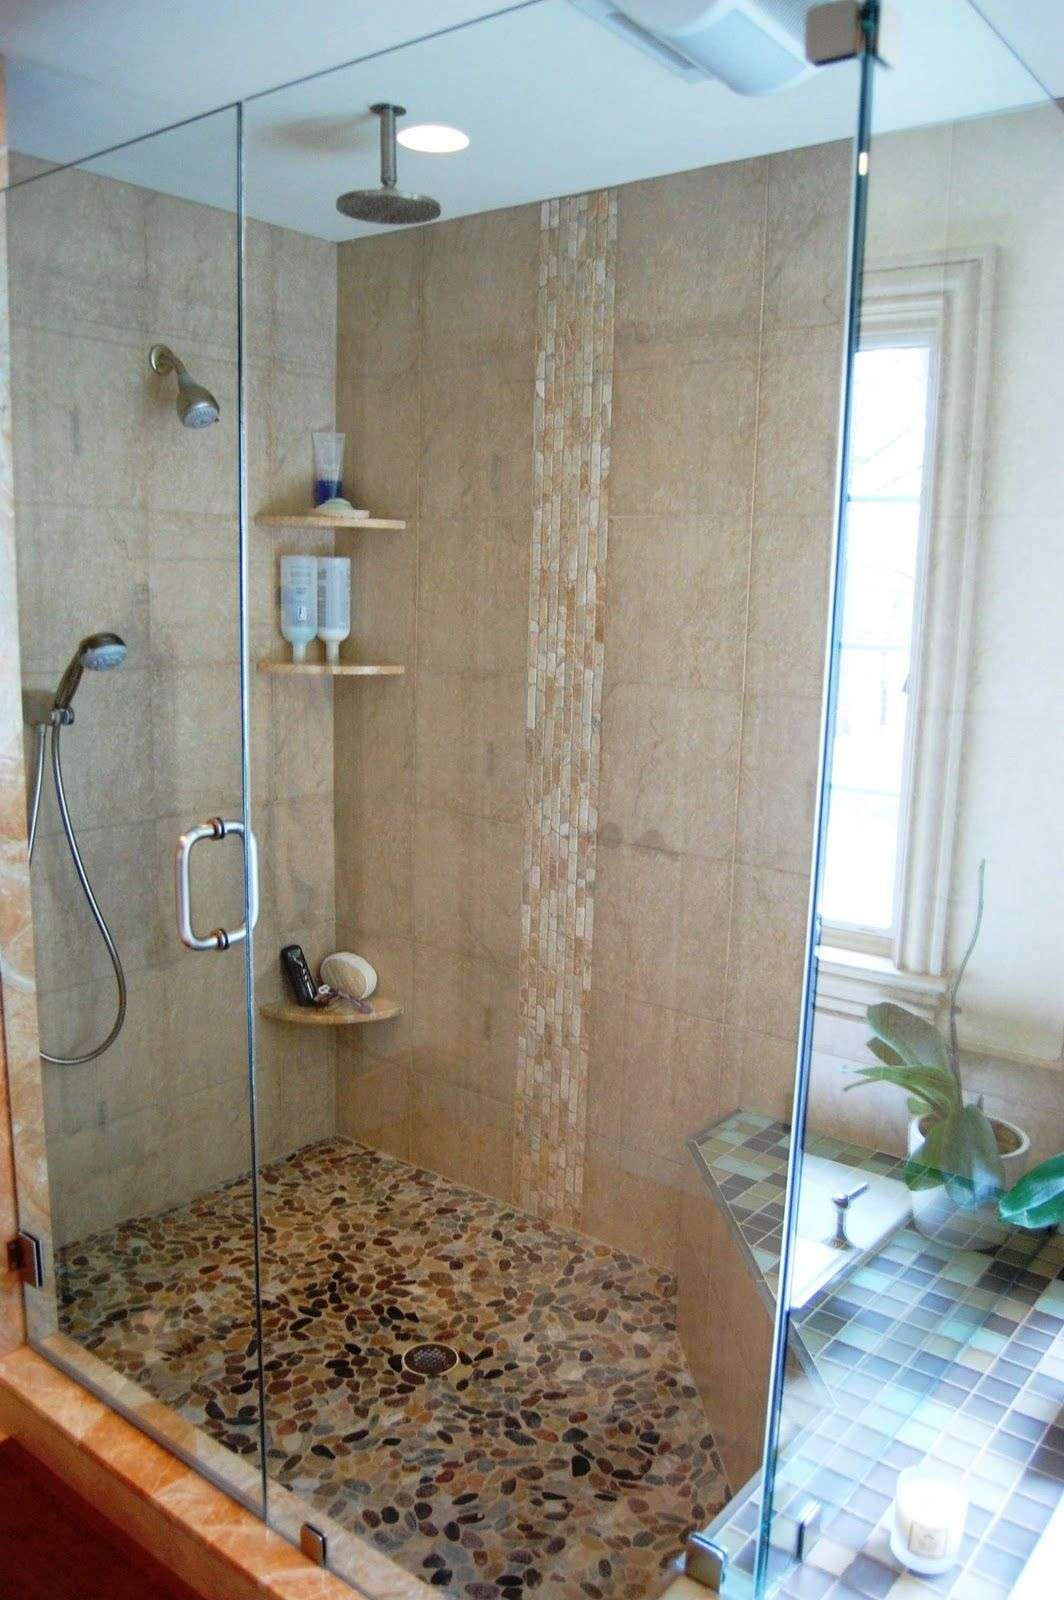 Bathroom shower ideas waterfall bedroom ideas interior design ...